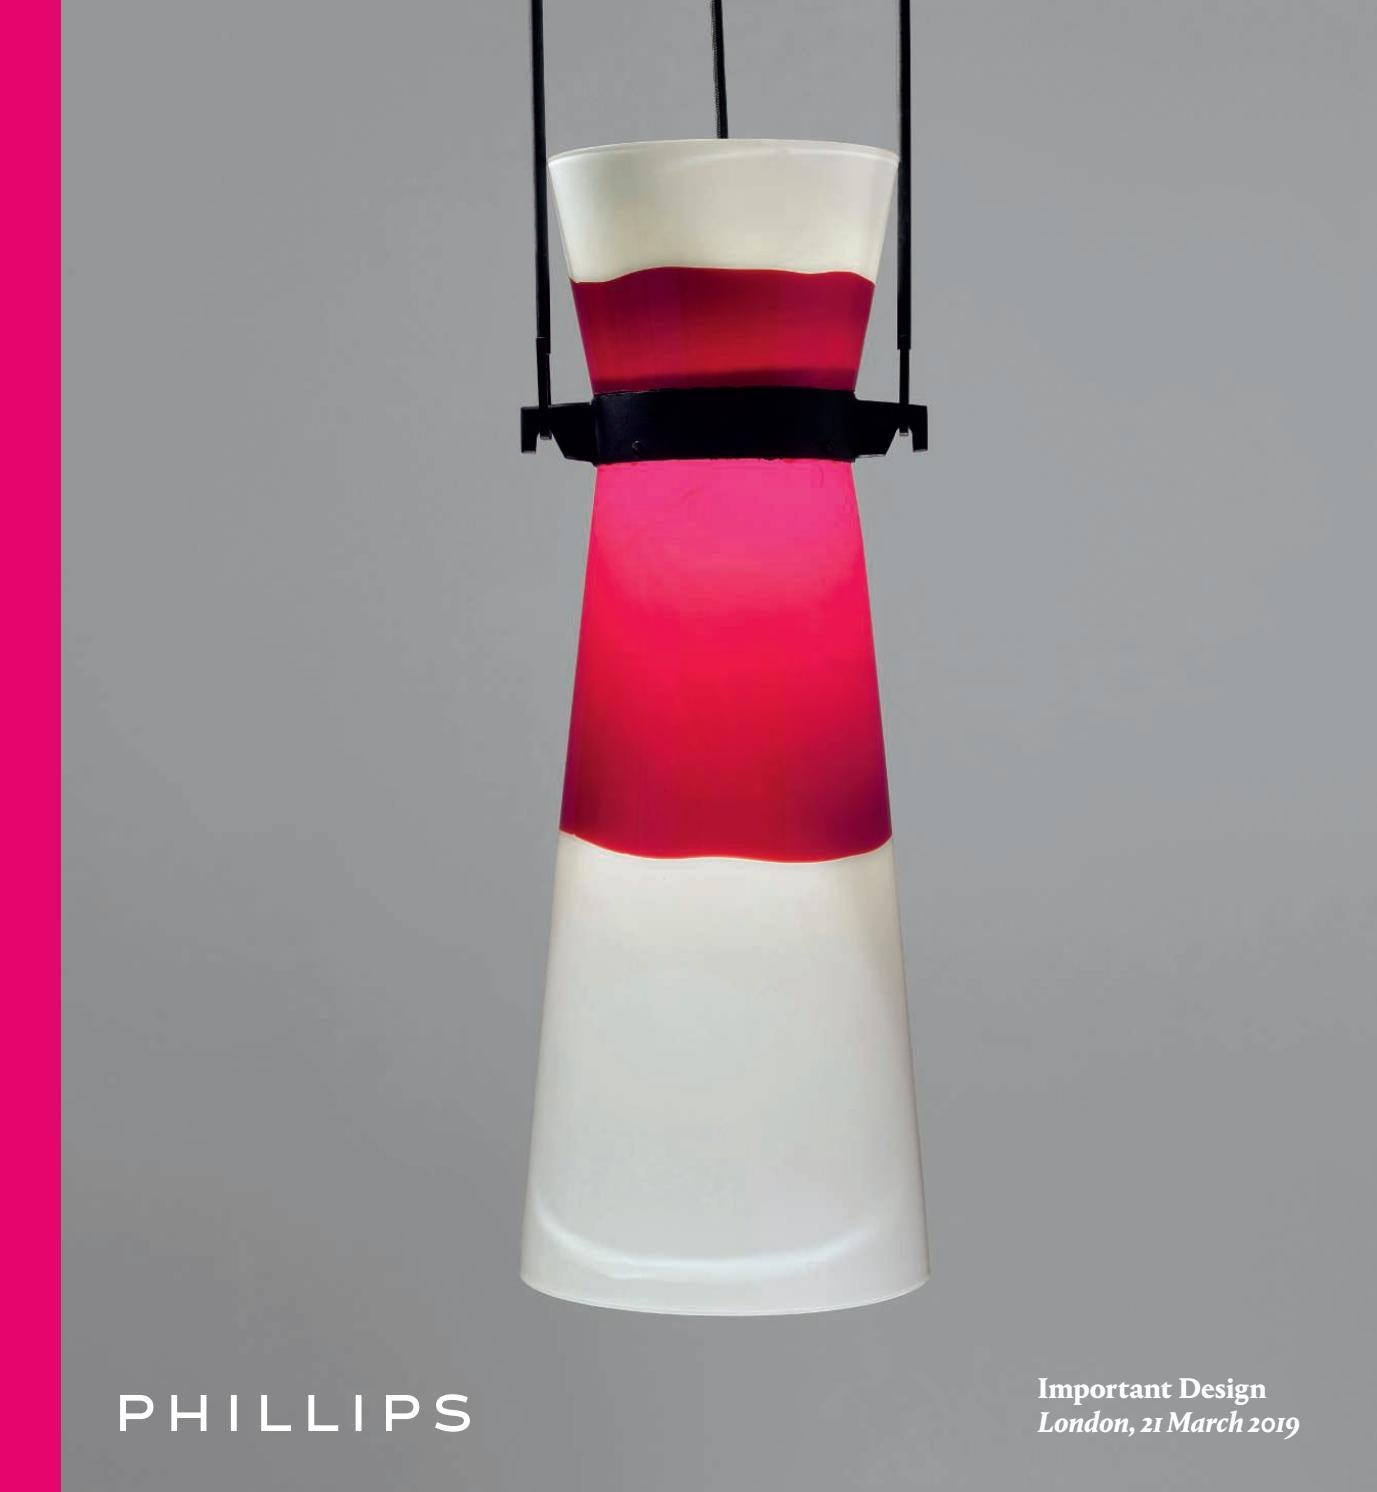 Executive Design Mobili Contemporanei.Important Design Catalogue By Phillips Issuu